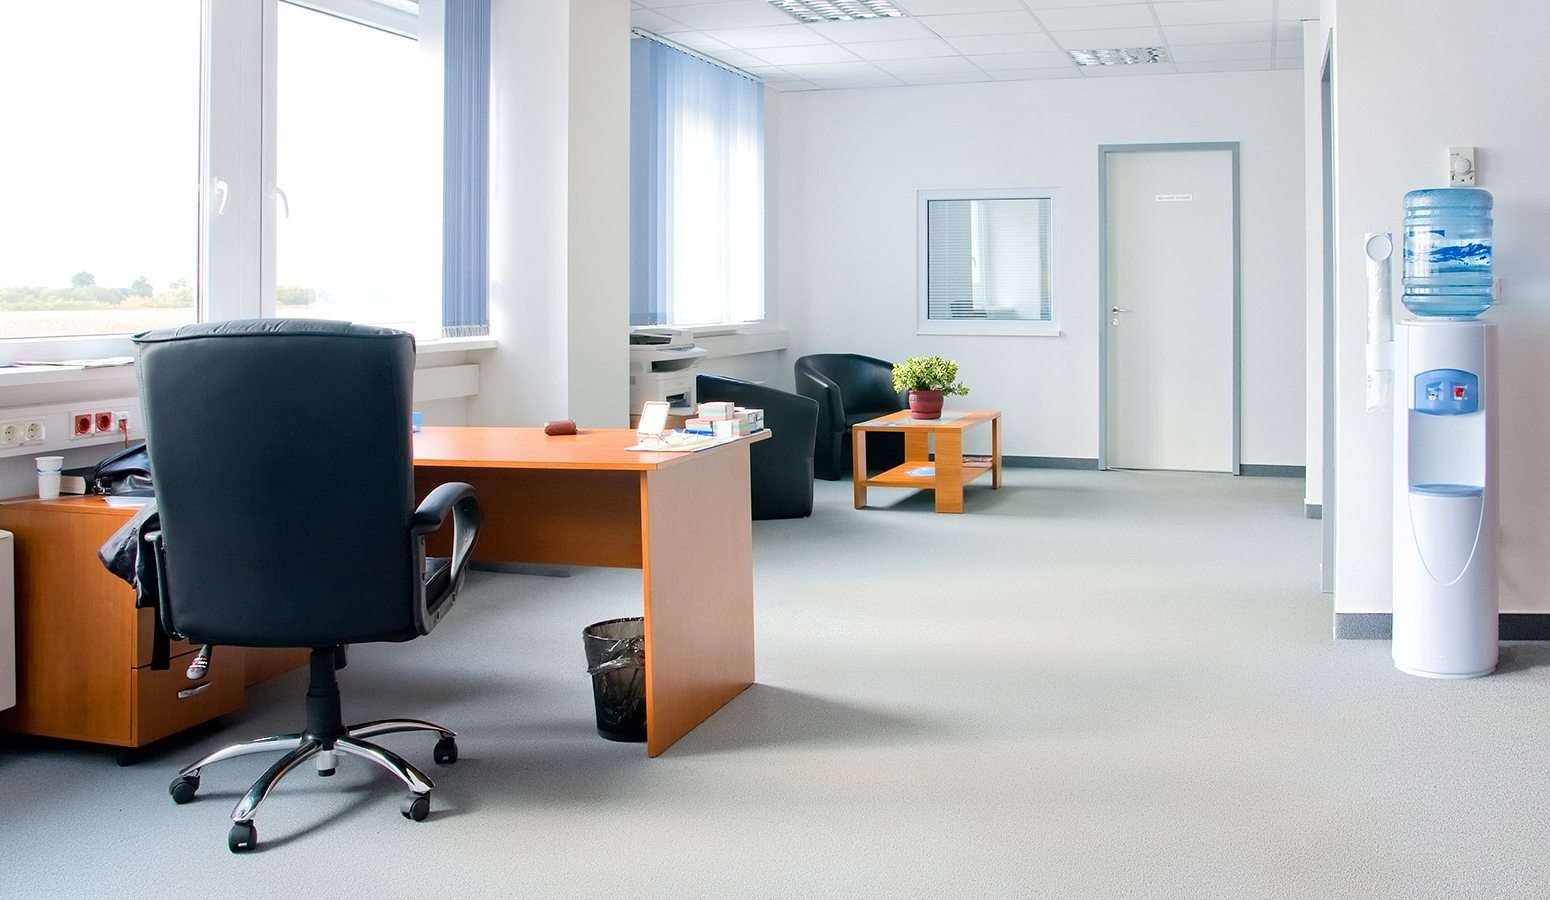 Commercial cleaning prices